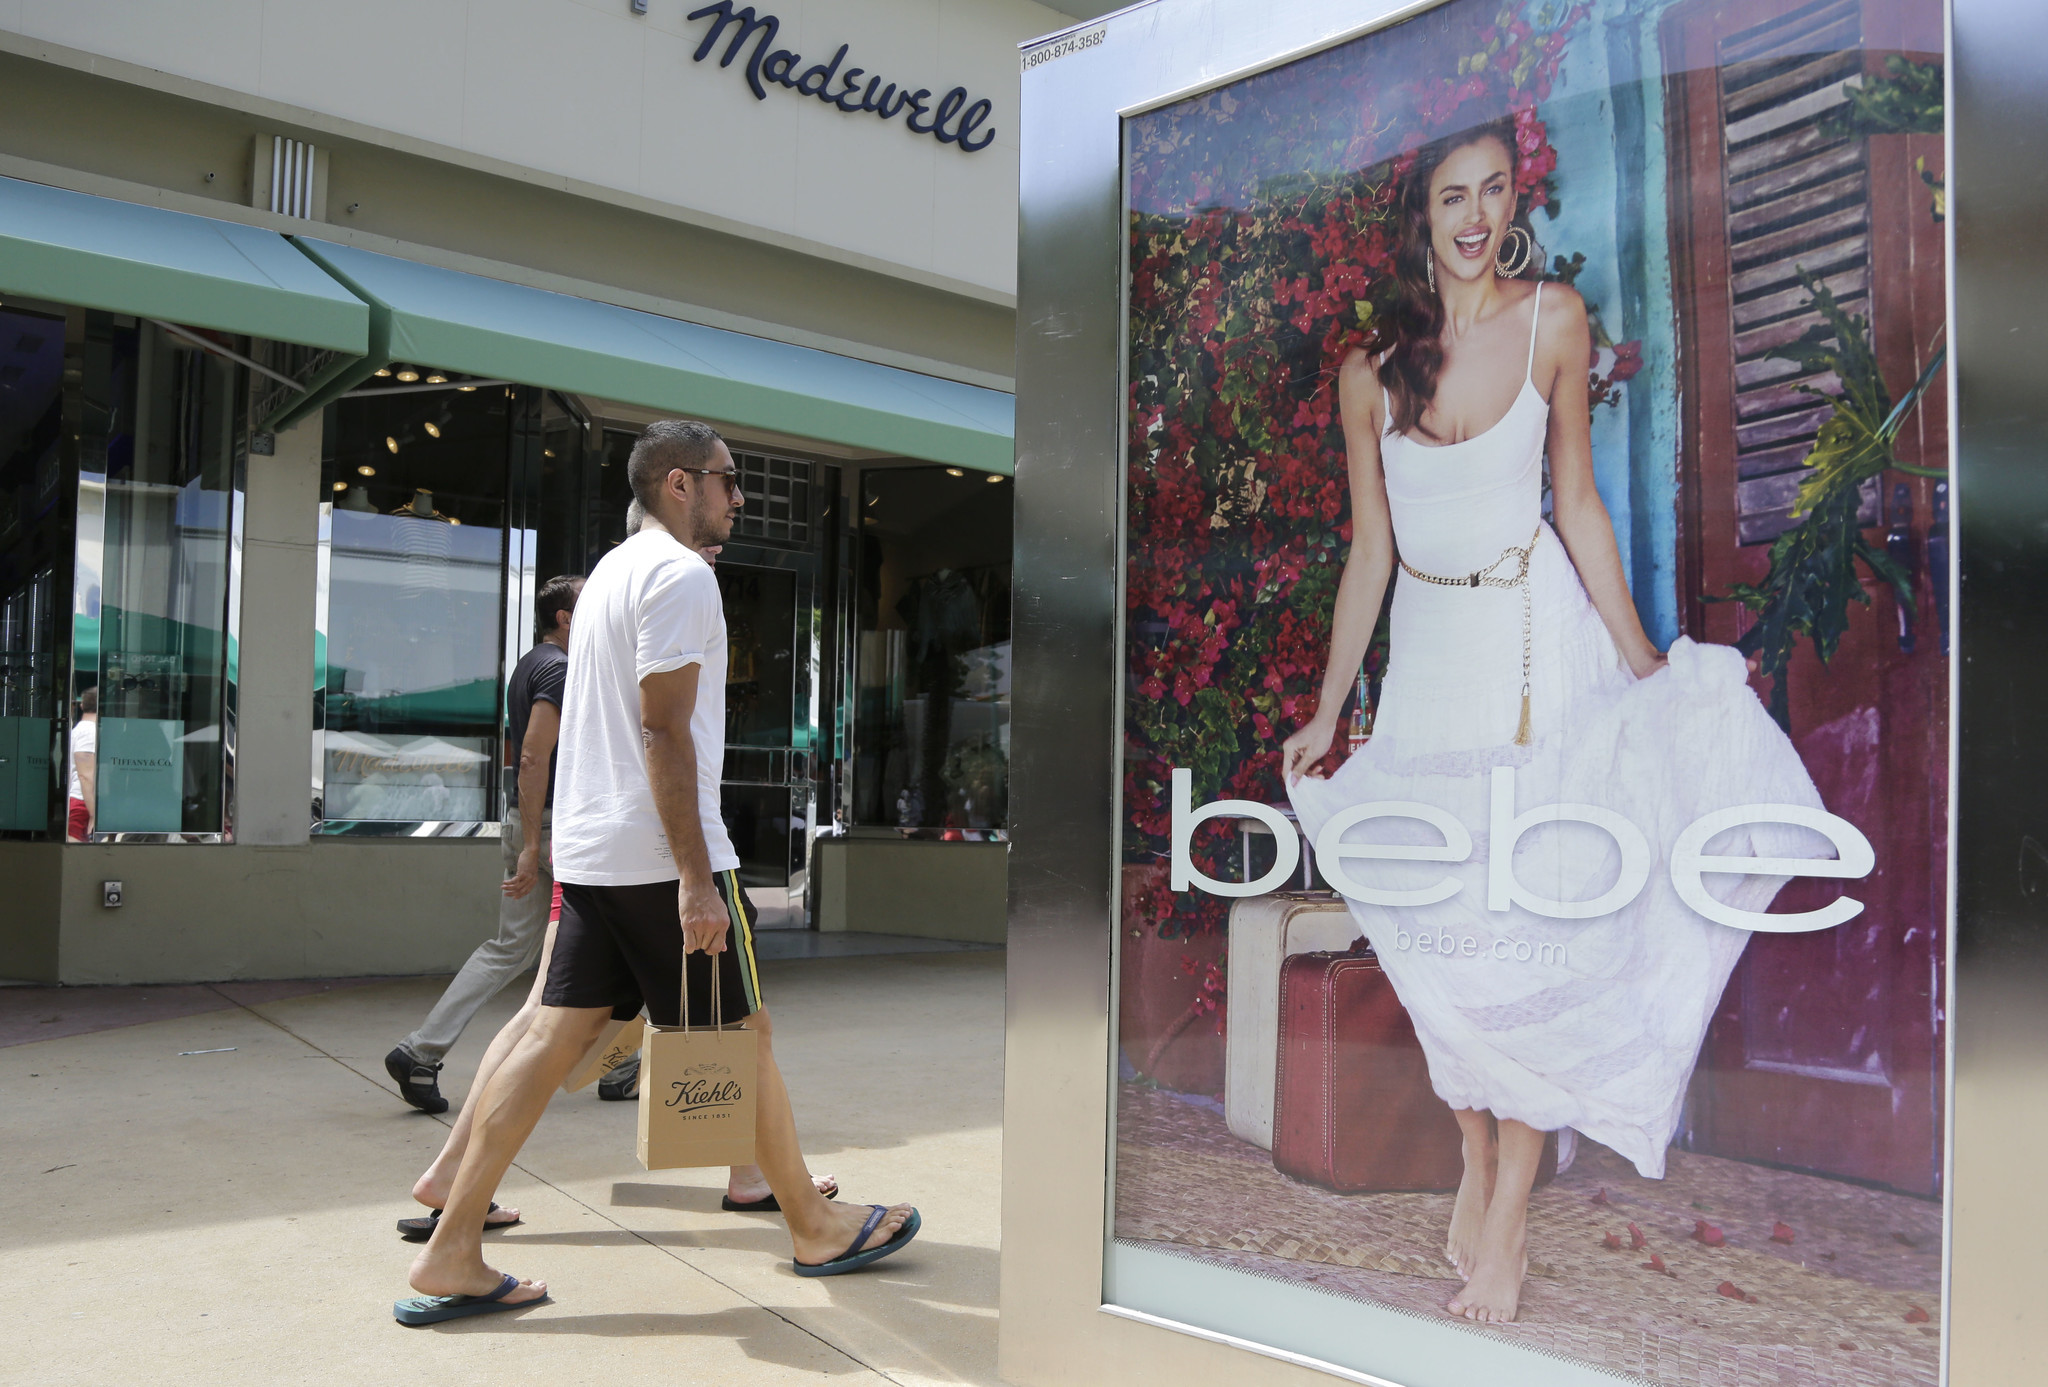 Bebe is latest retailer to announce closures